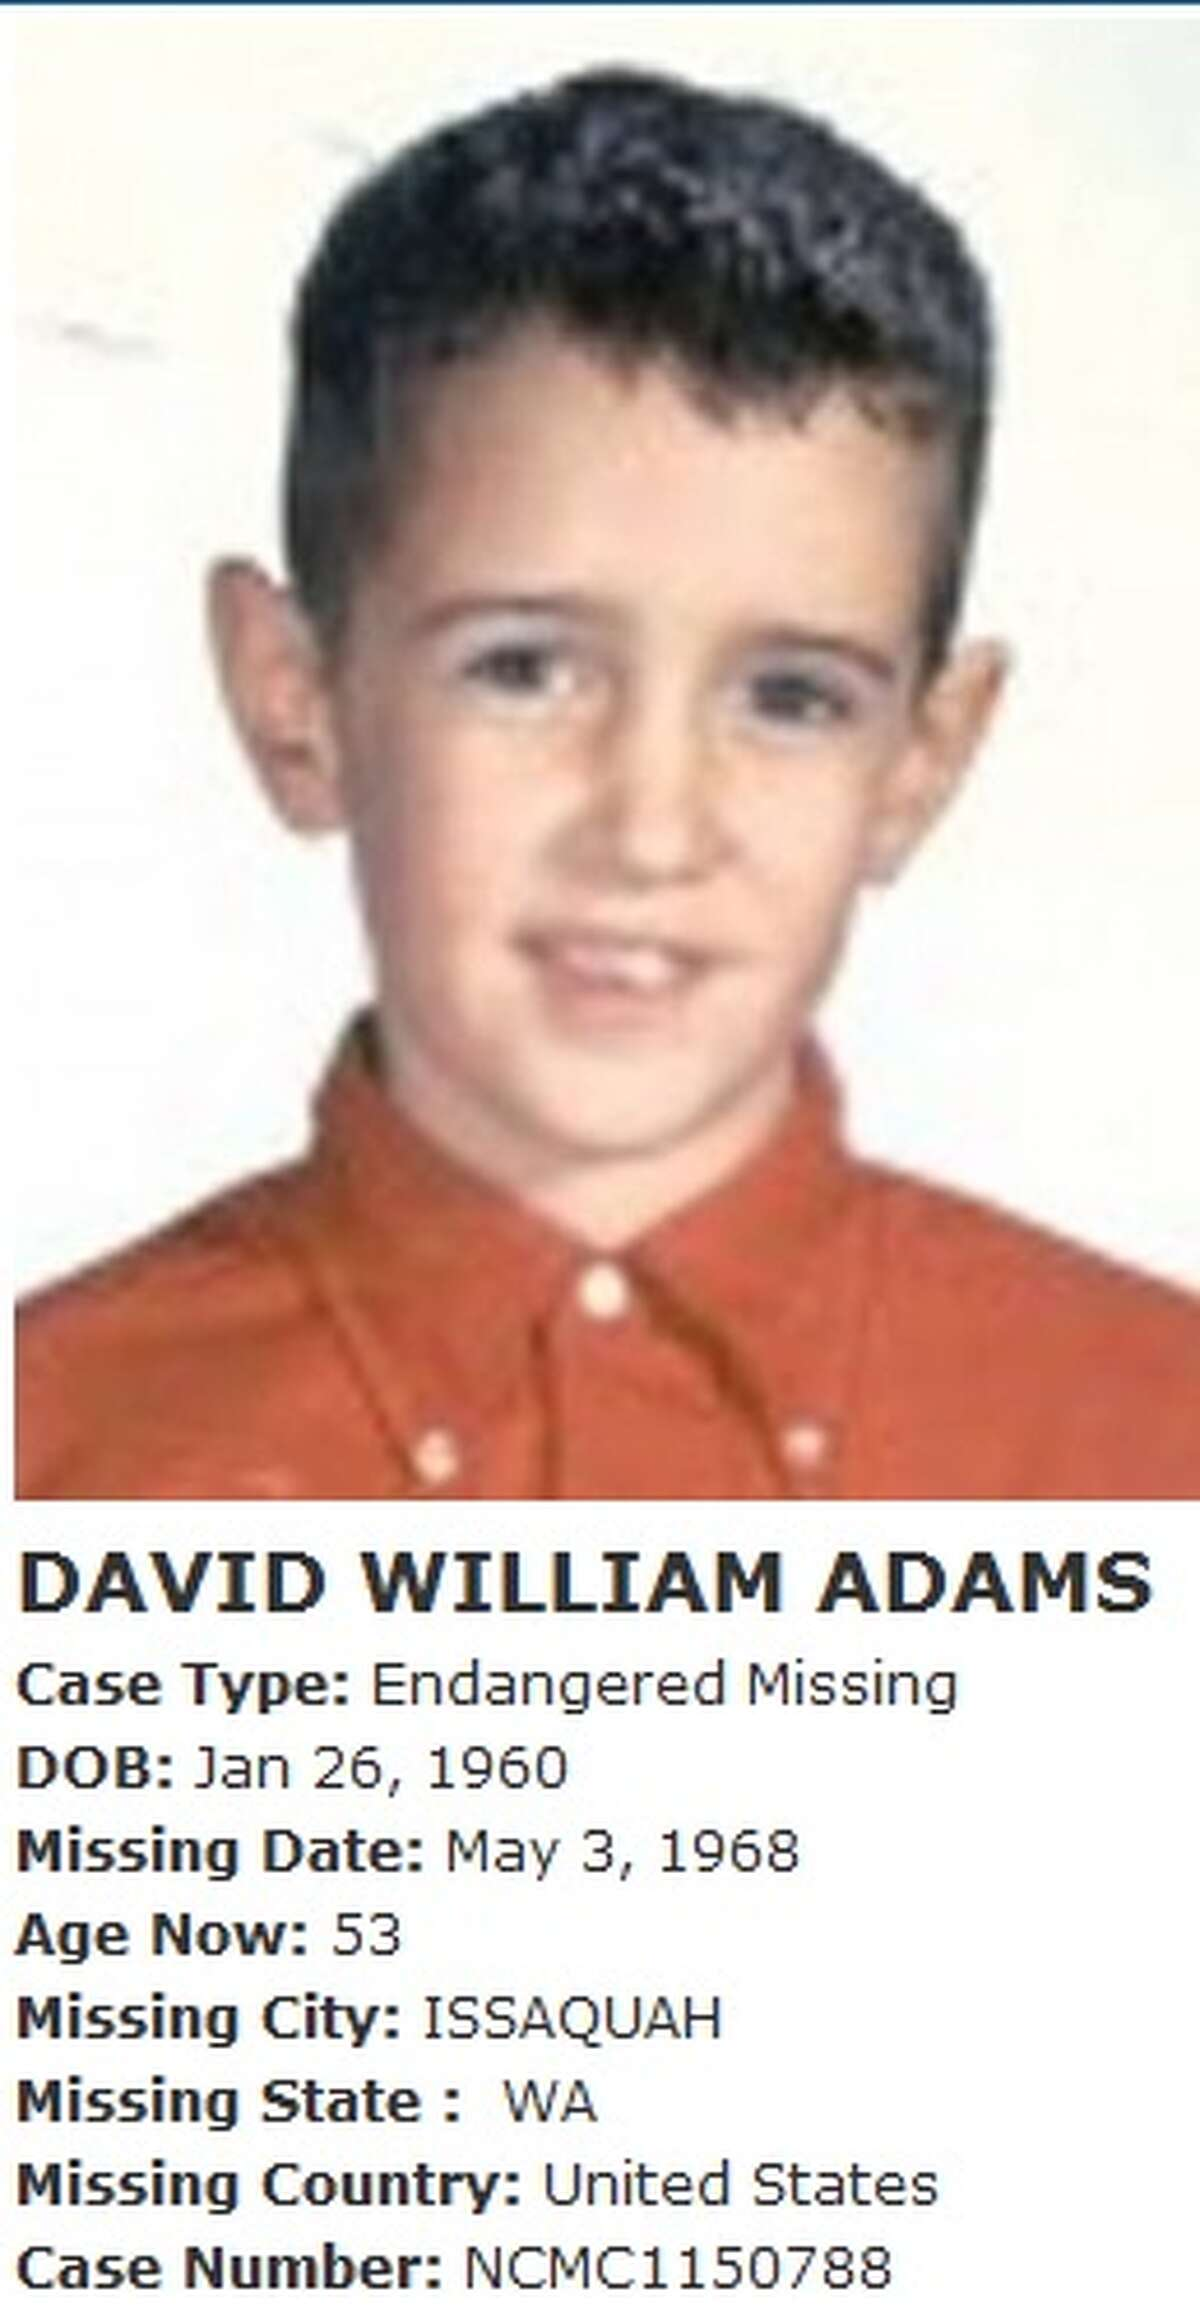 According to the FBI, more than half of child abductions take place within three city blocks of the victim's home. The David Adams case, which happened in 1968 but is still active, is an example of that. Adams disappeared in 1968 when he was 8 years old while he was walking near Tiger Mountain Road in Issaquah, going from a friend's house to his own. When he did not arrive home, his parents alerted the authorities and a huge search was conducted, yielding no results.The case was closed when authorities assumed the boy had been attacked by animals or fallen down a mine shaft, but it was reopened by King County Sheriff's Office Det. Scott Tompkins in 2009 when Tompkins determined that a then-20-year-old neighbor of Adams was the last person who may have seen him because the neighbor was seen in the area where Adams went missing.That man, who is now in his 60s, was interviewed in the days following David's disappearance and is still considered a person of interest. In 2009, the person of interest, who is not being named because he has not been charged, was given a polygraph test, which he reportedly failed. The case remains unsolved.David Adams' page from the National Center for Missing and Exploited Children